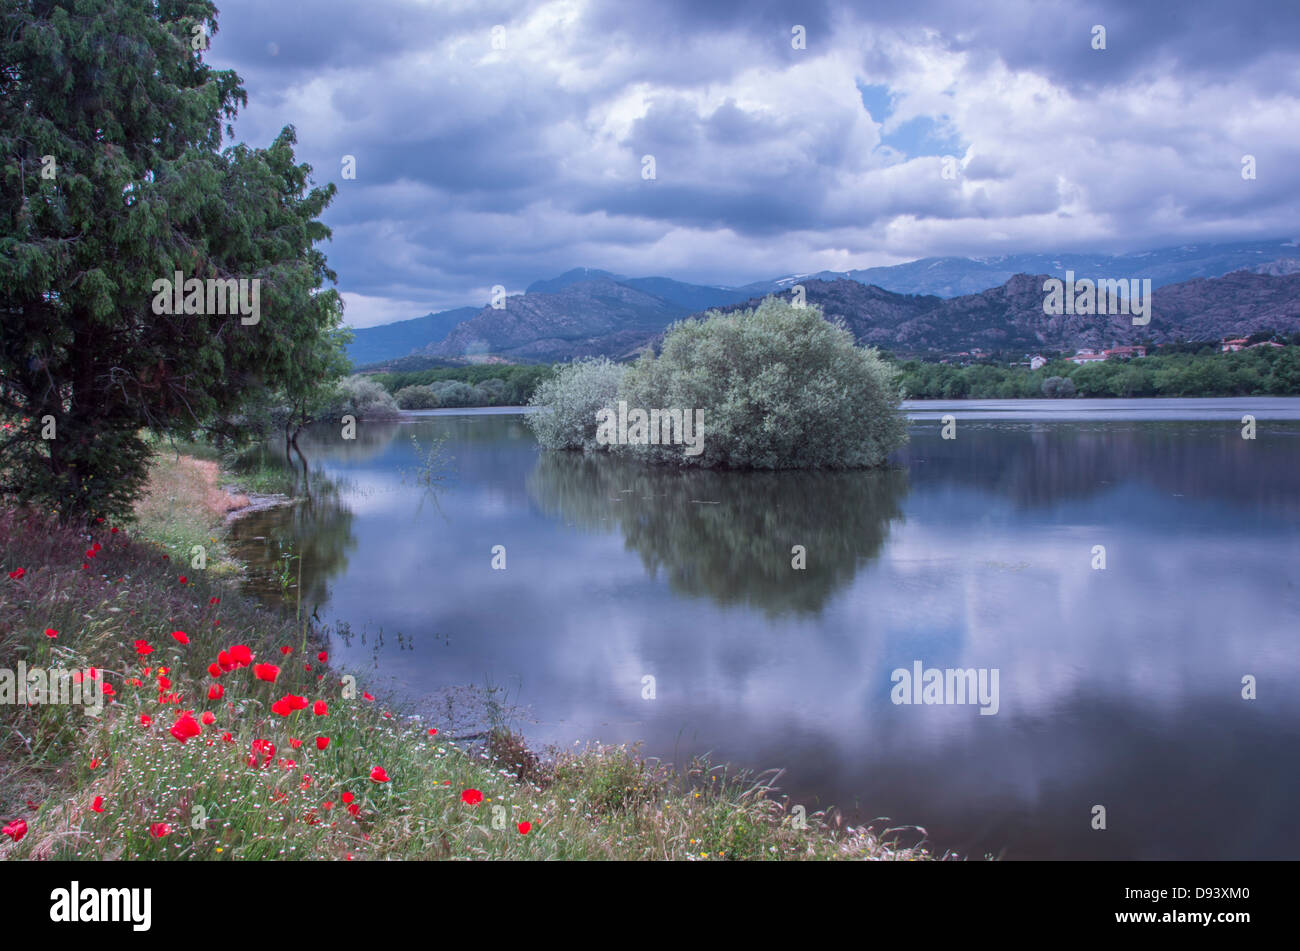 Landscape in Manzanares del Real lake in Regional Park of Manzanares in Madrid. Reflections of one big bush in the Stock Photo